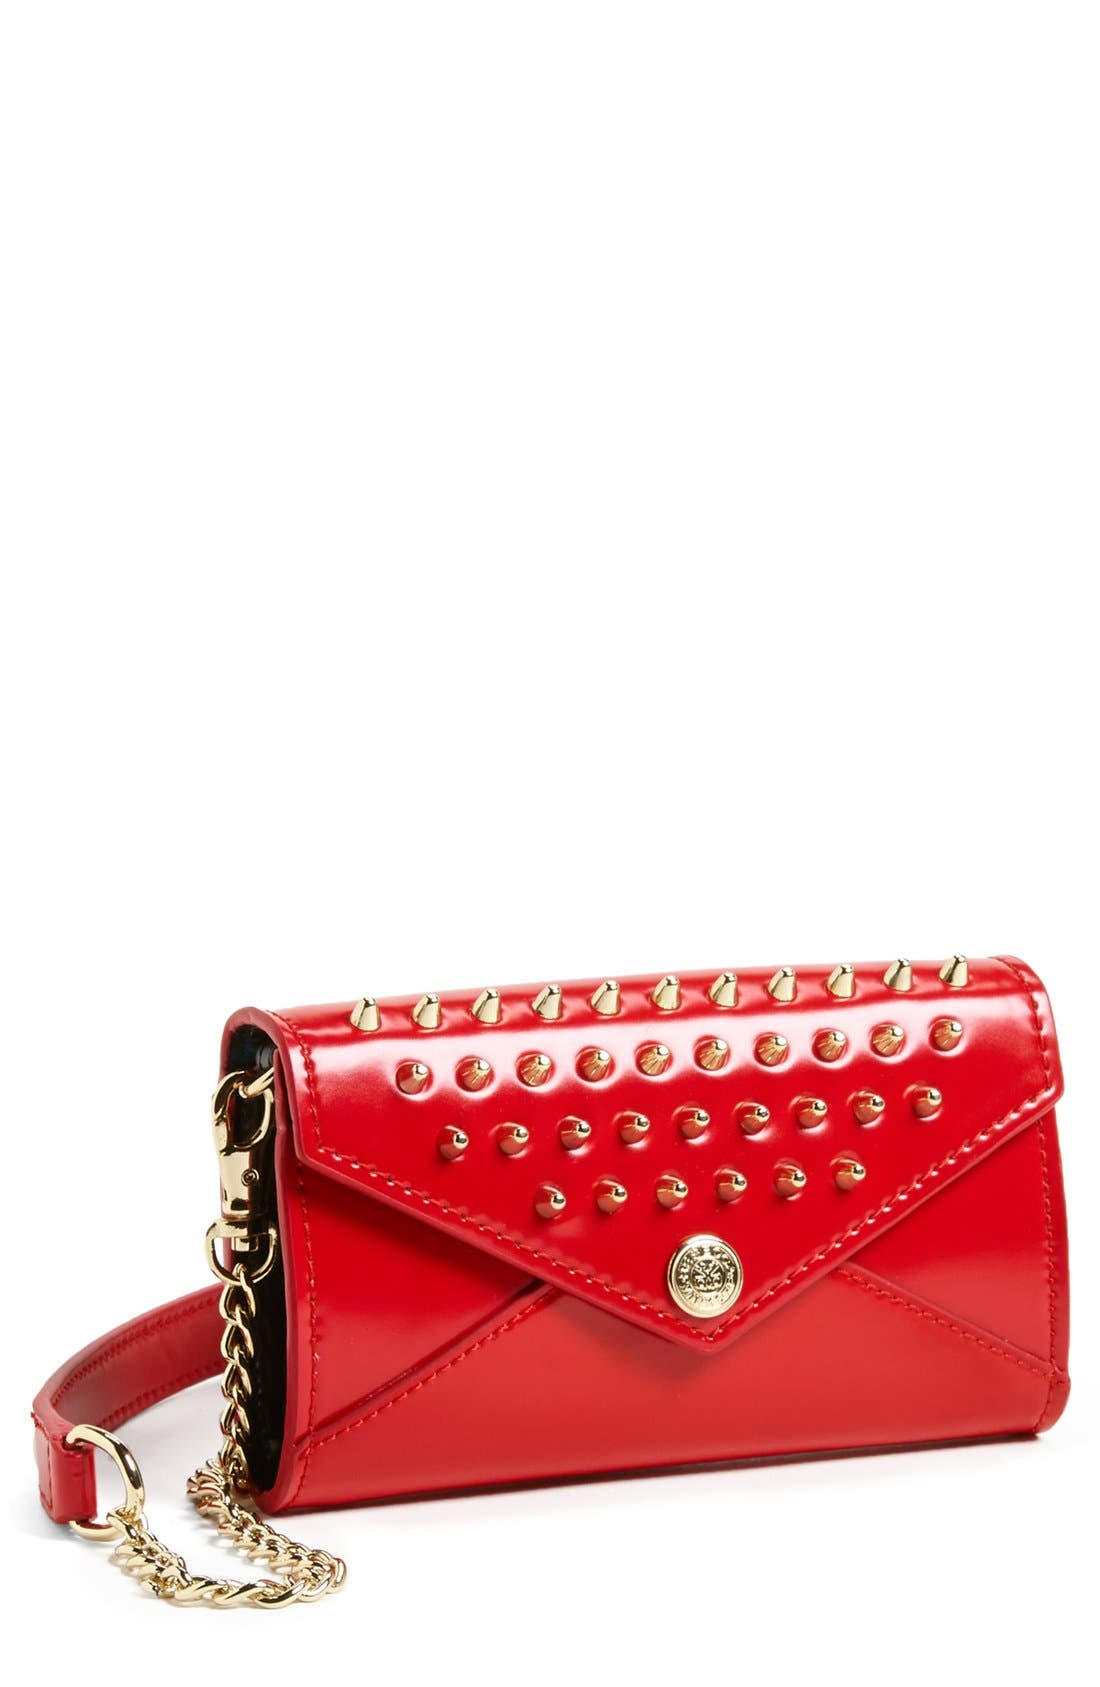 Alternate Image 1 Selected - Rebecca Minkoff 'Studded Wallet on a Chain - Mini' Crossbody Bag